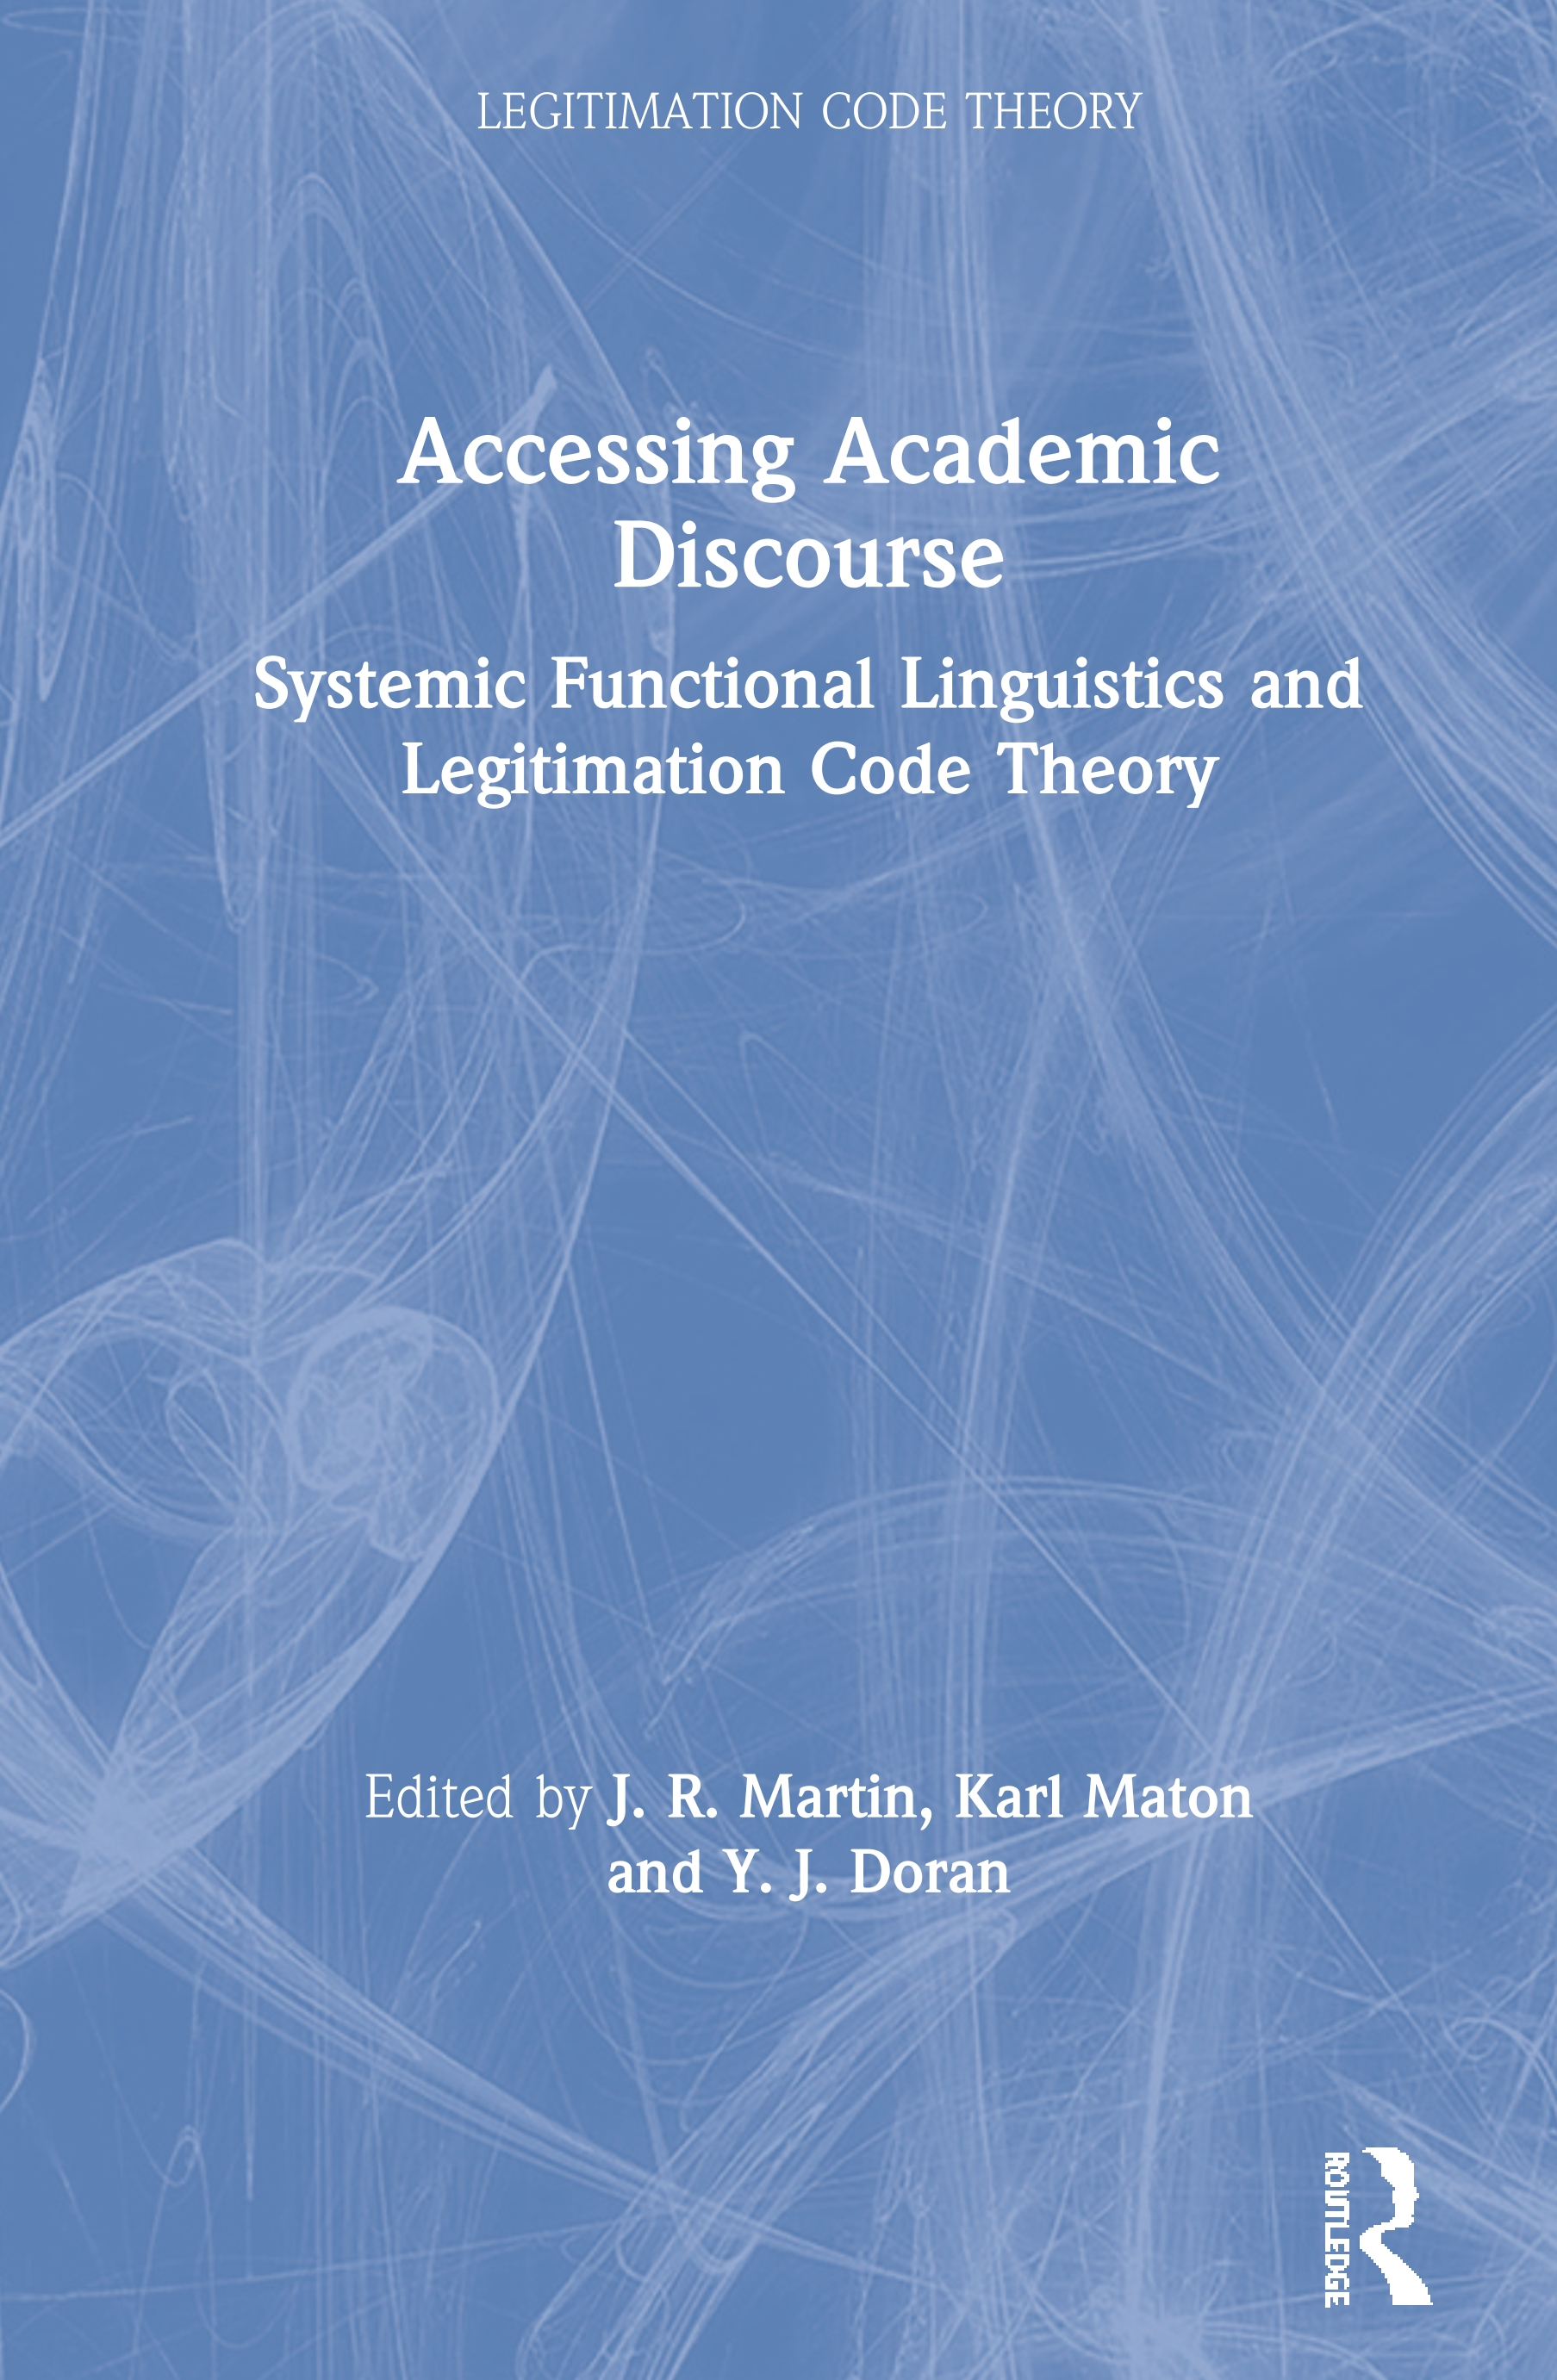 Accessing Academic Discourse: Systemic Functional Linguistics and Legitimation Code Theory book cover